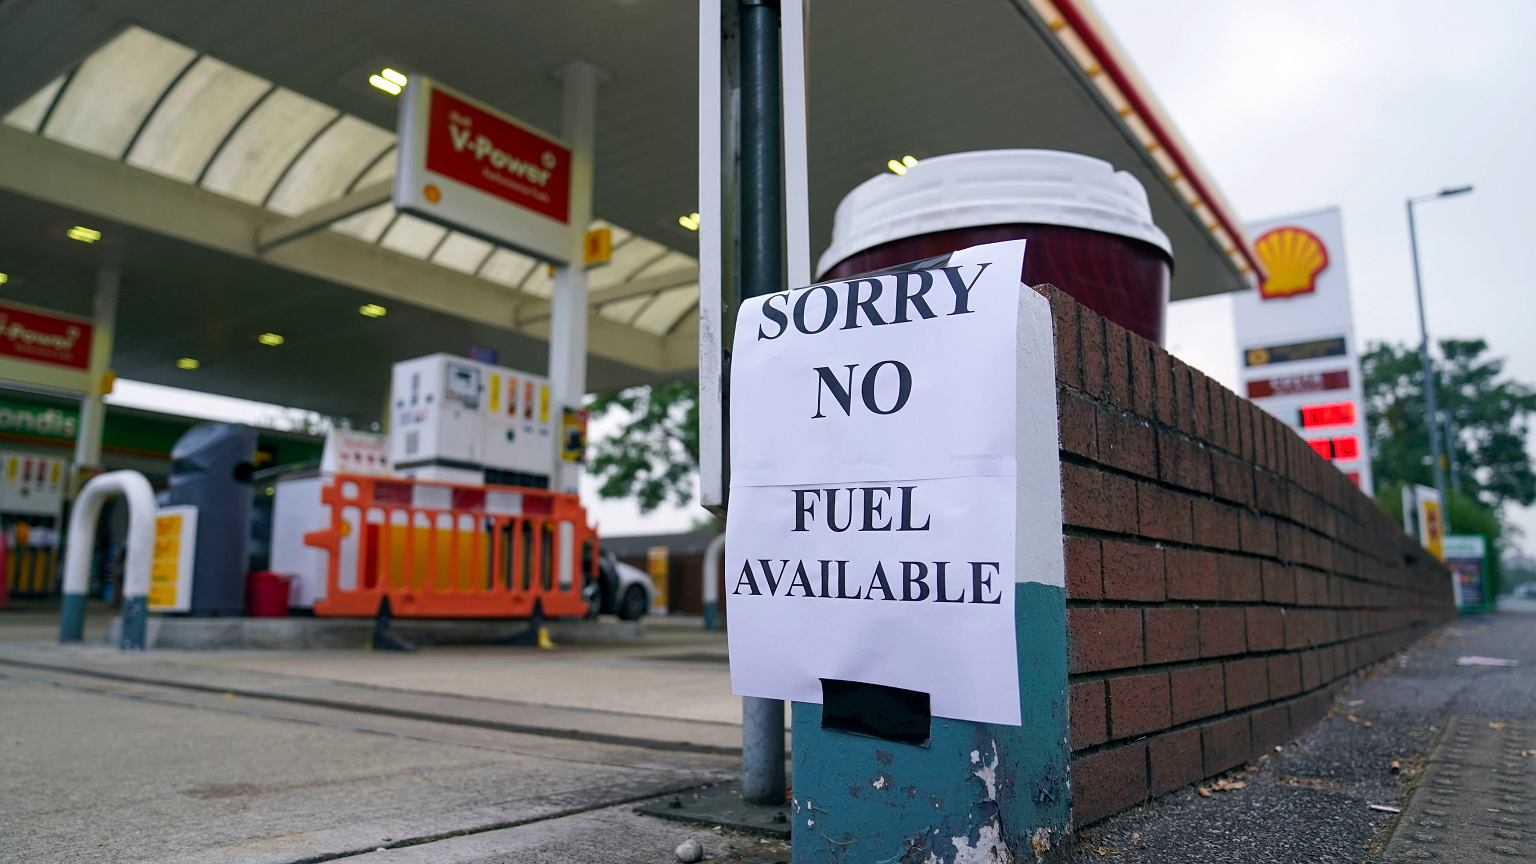 Great Britain.  There is a shortage of some products in stores due to a shortage of truck drivers.